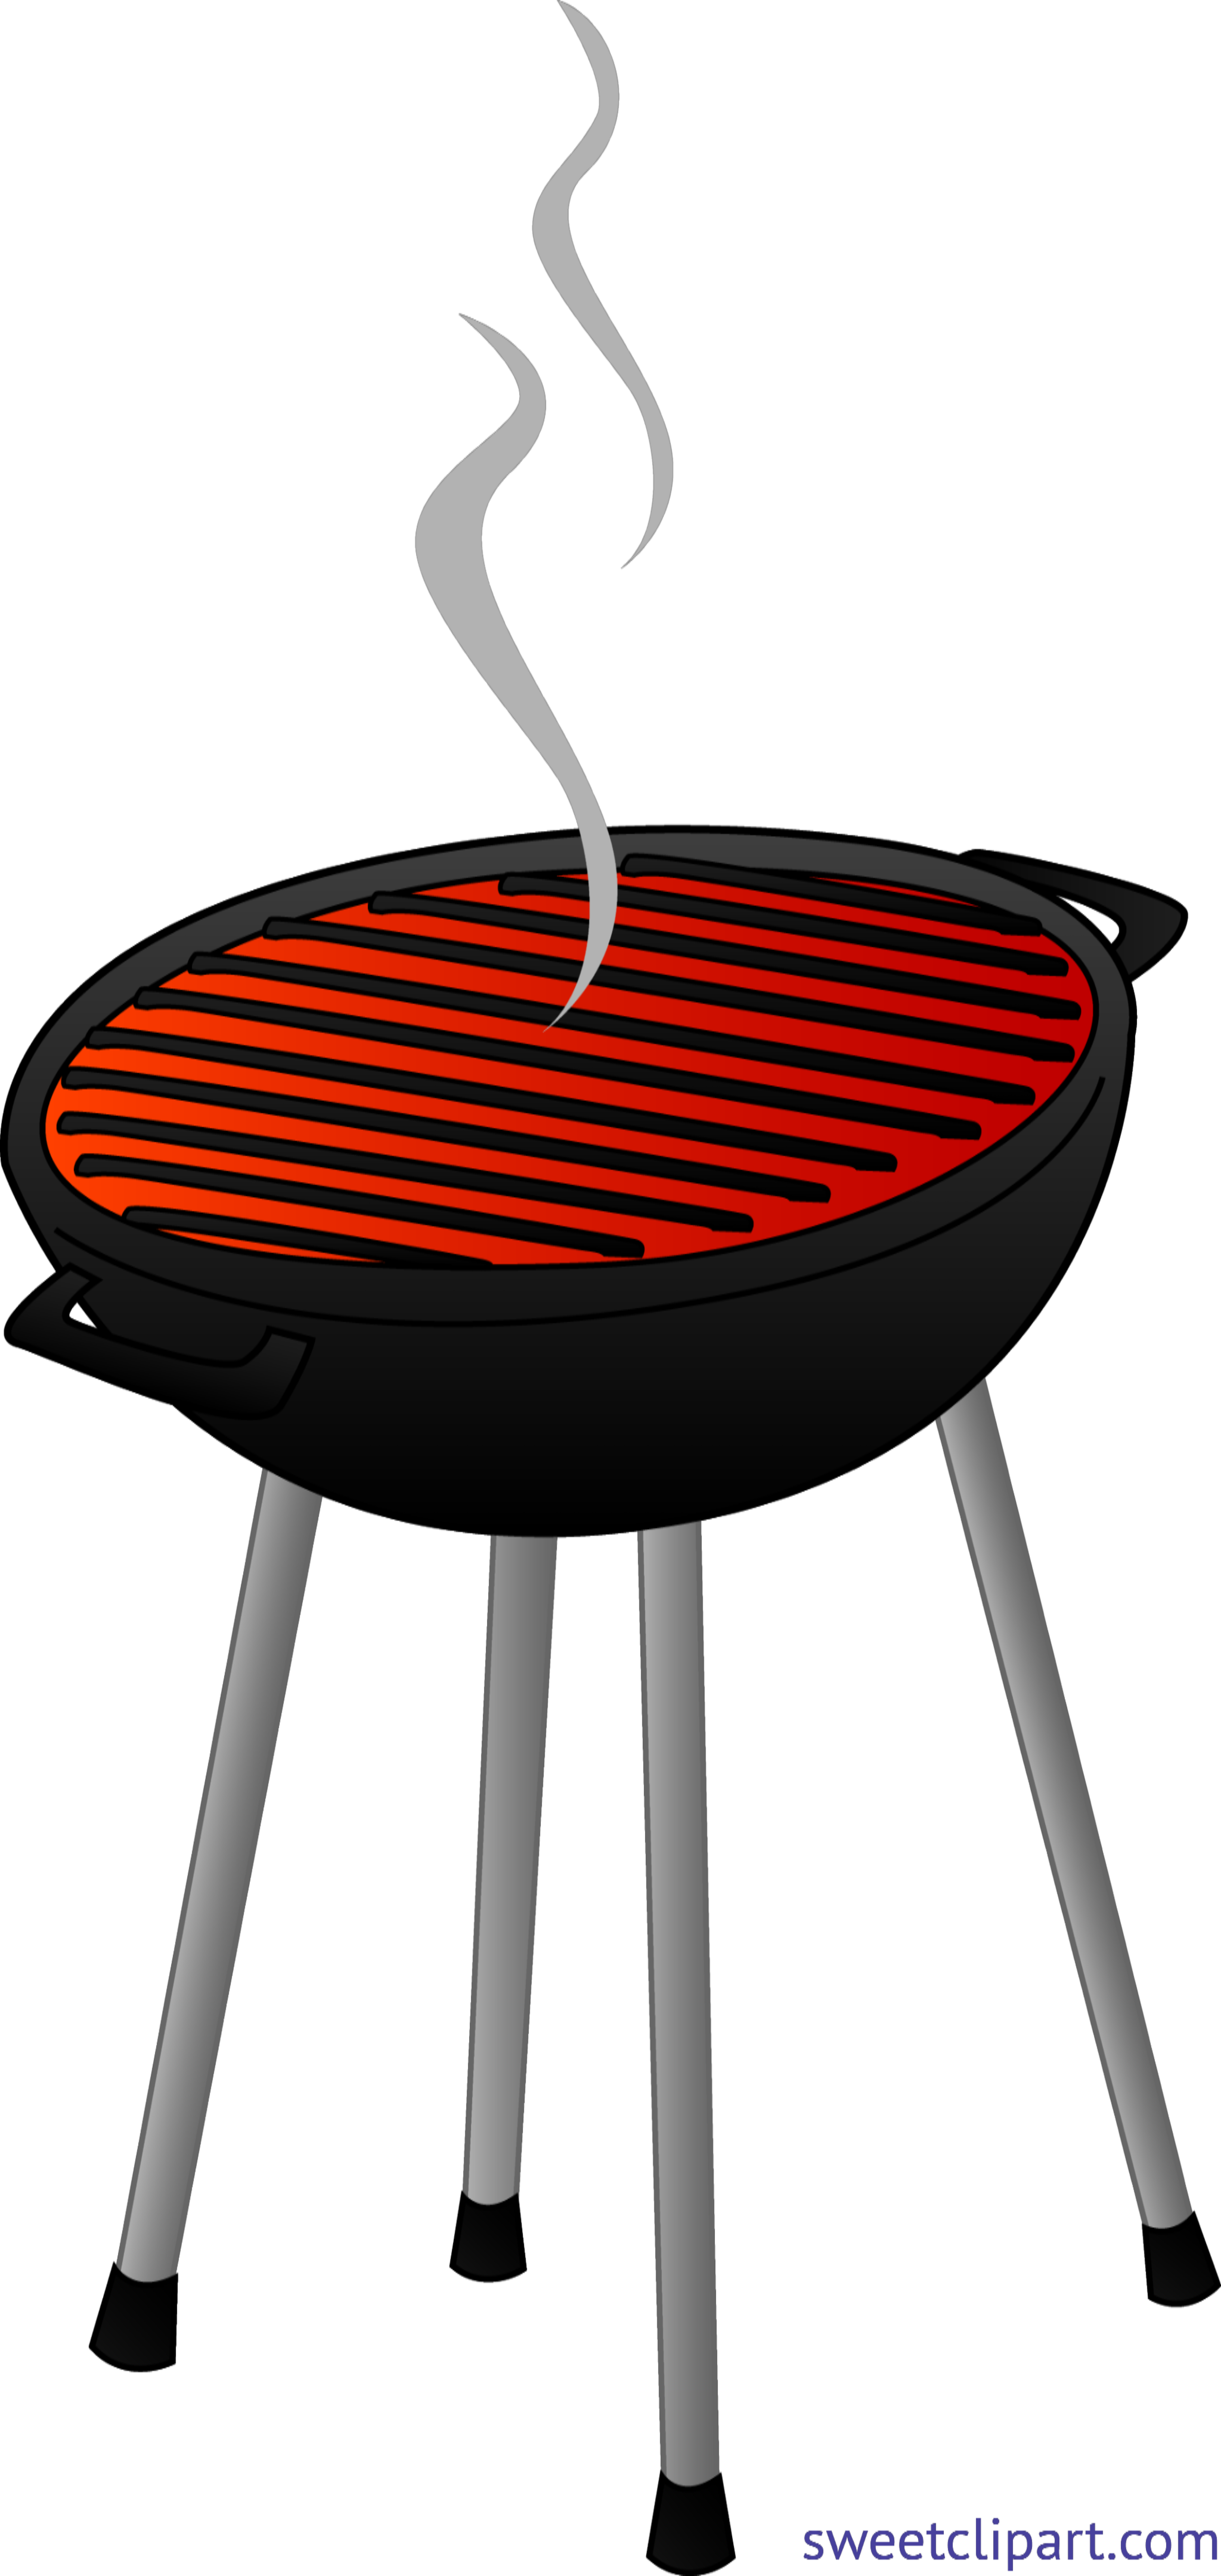 Barbecue clip art sweet. Grill clipart outdoor grill clip free download